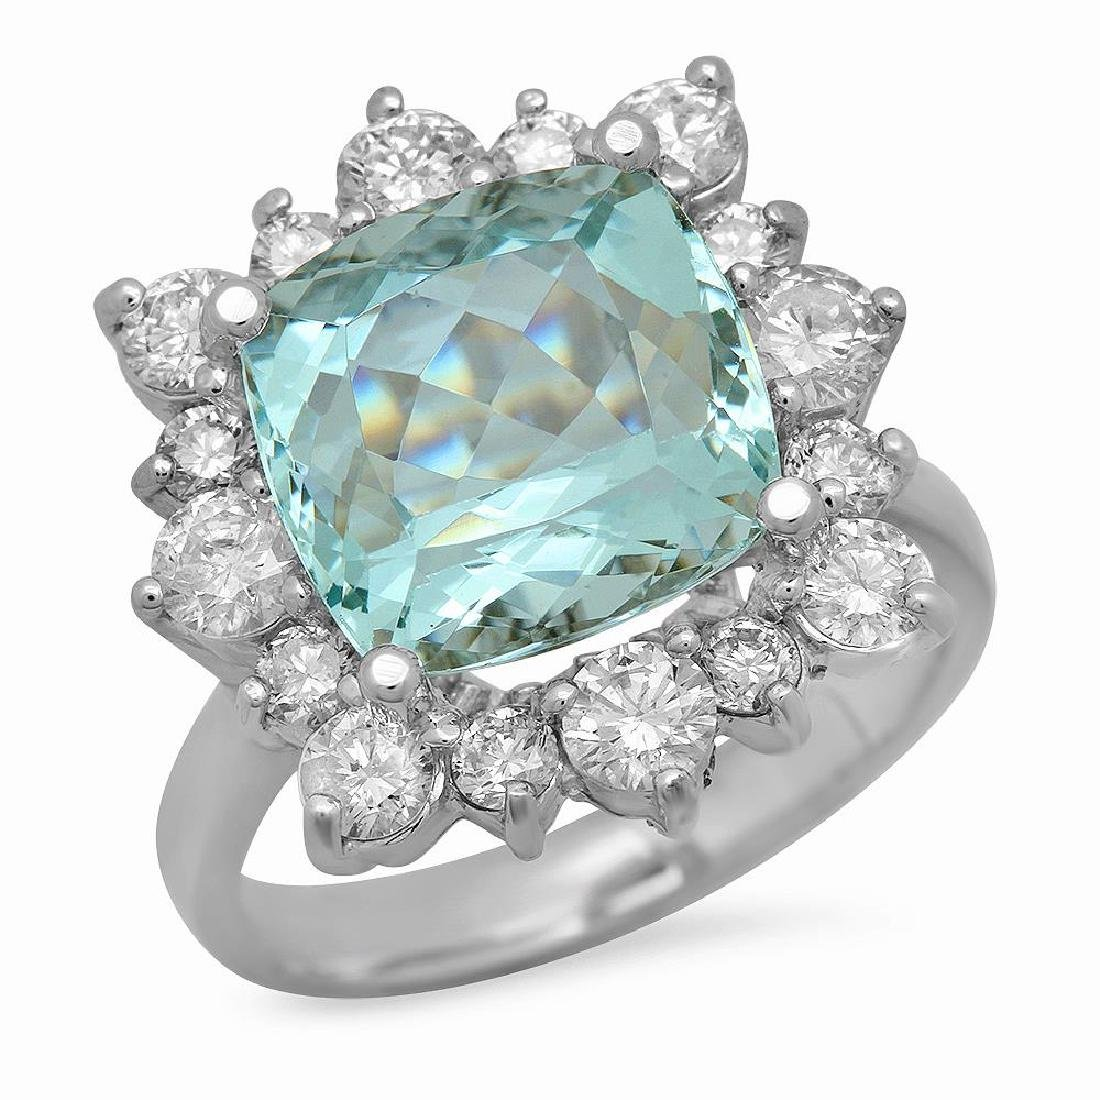 14K Gold 5.79ct Aquamarine 1.44ct Diamond Ring